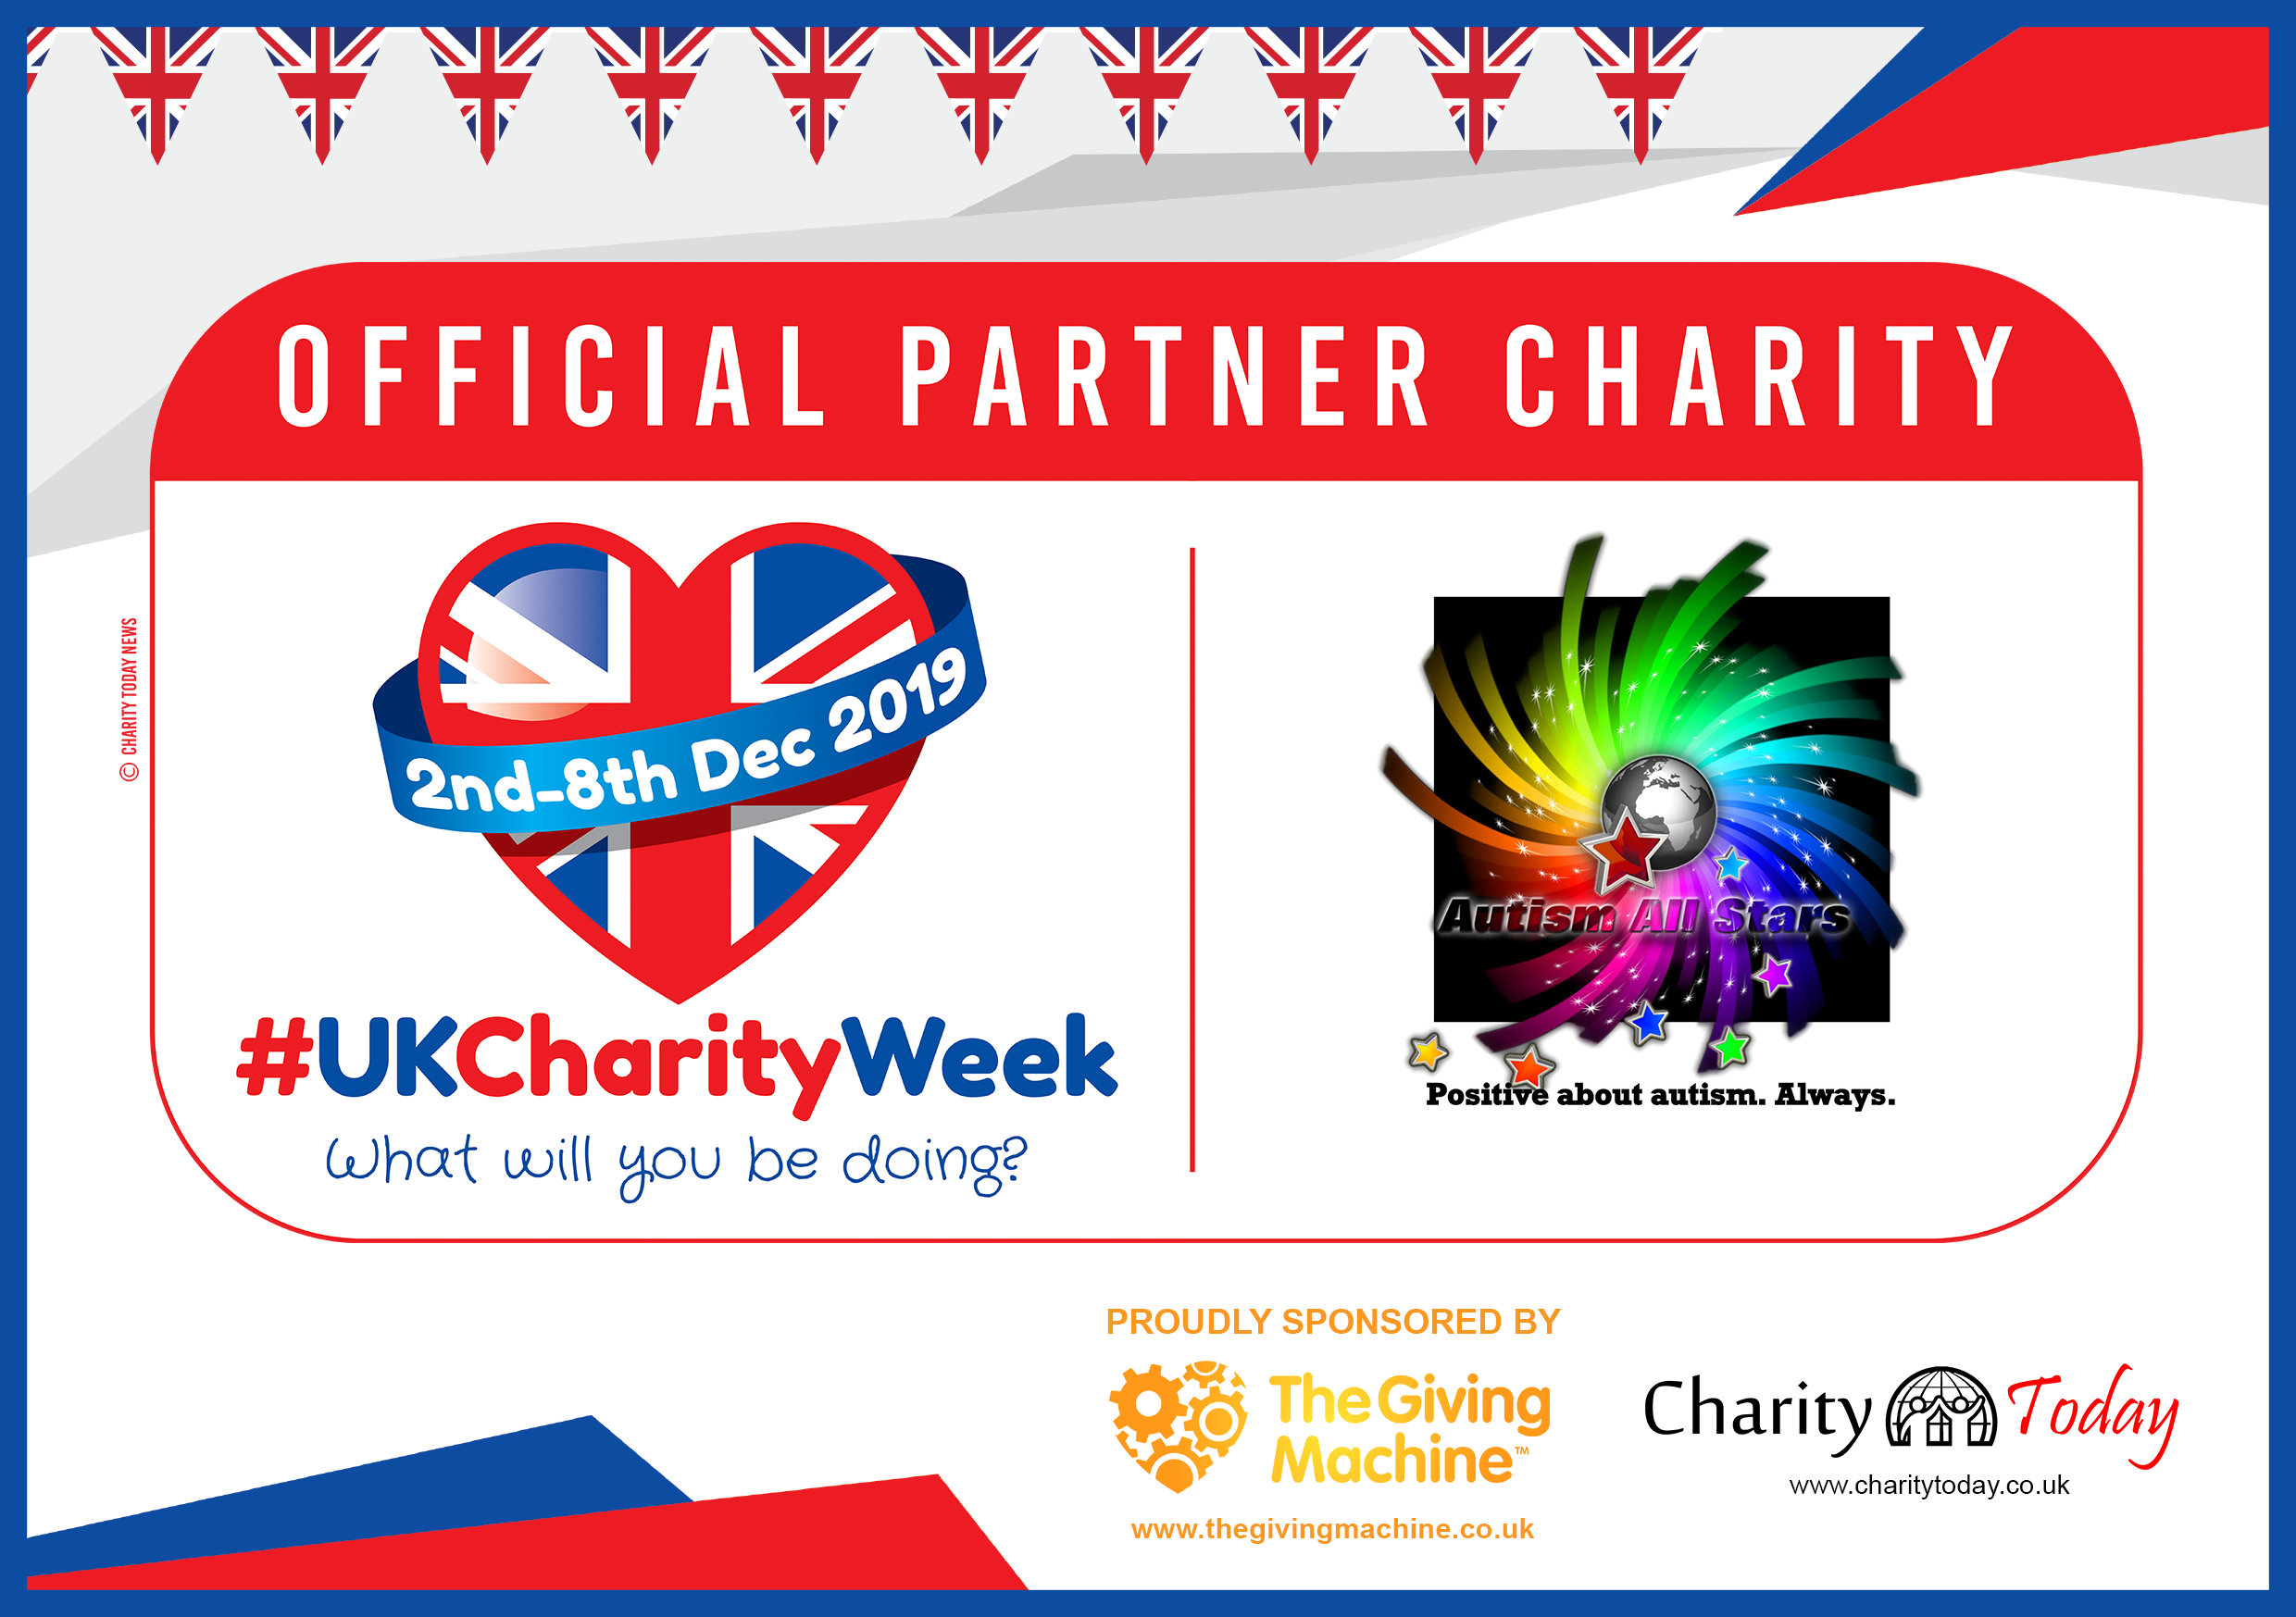 Aspergers, autism, Autism All Stars, autism awareness, UK Charity Week, fundraising, charity, neurodiversity, Surrey, Sussex, UK Charity Week, autism acceptance, actually autistic, donate, fundraise, teamwork, support autism,